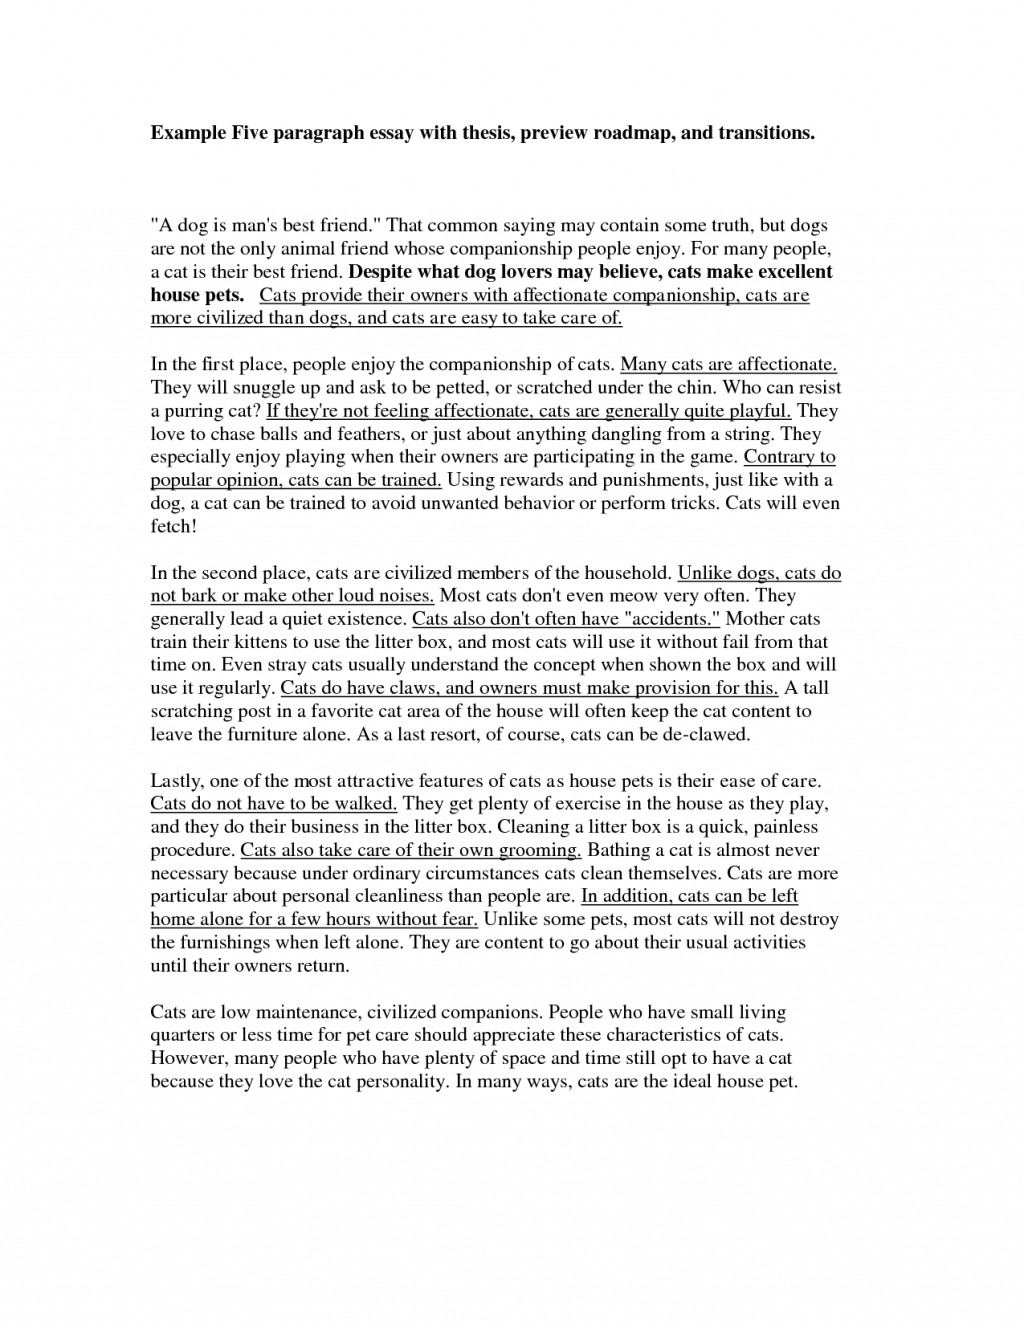 009 Sample Paragraph Essay Five 259424 Stupendous 5 Camping Pdf For 4th Grade Large